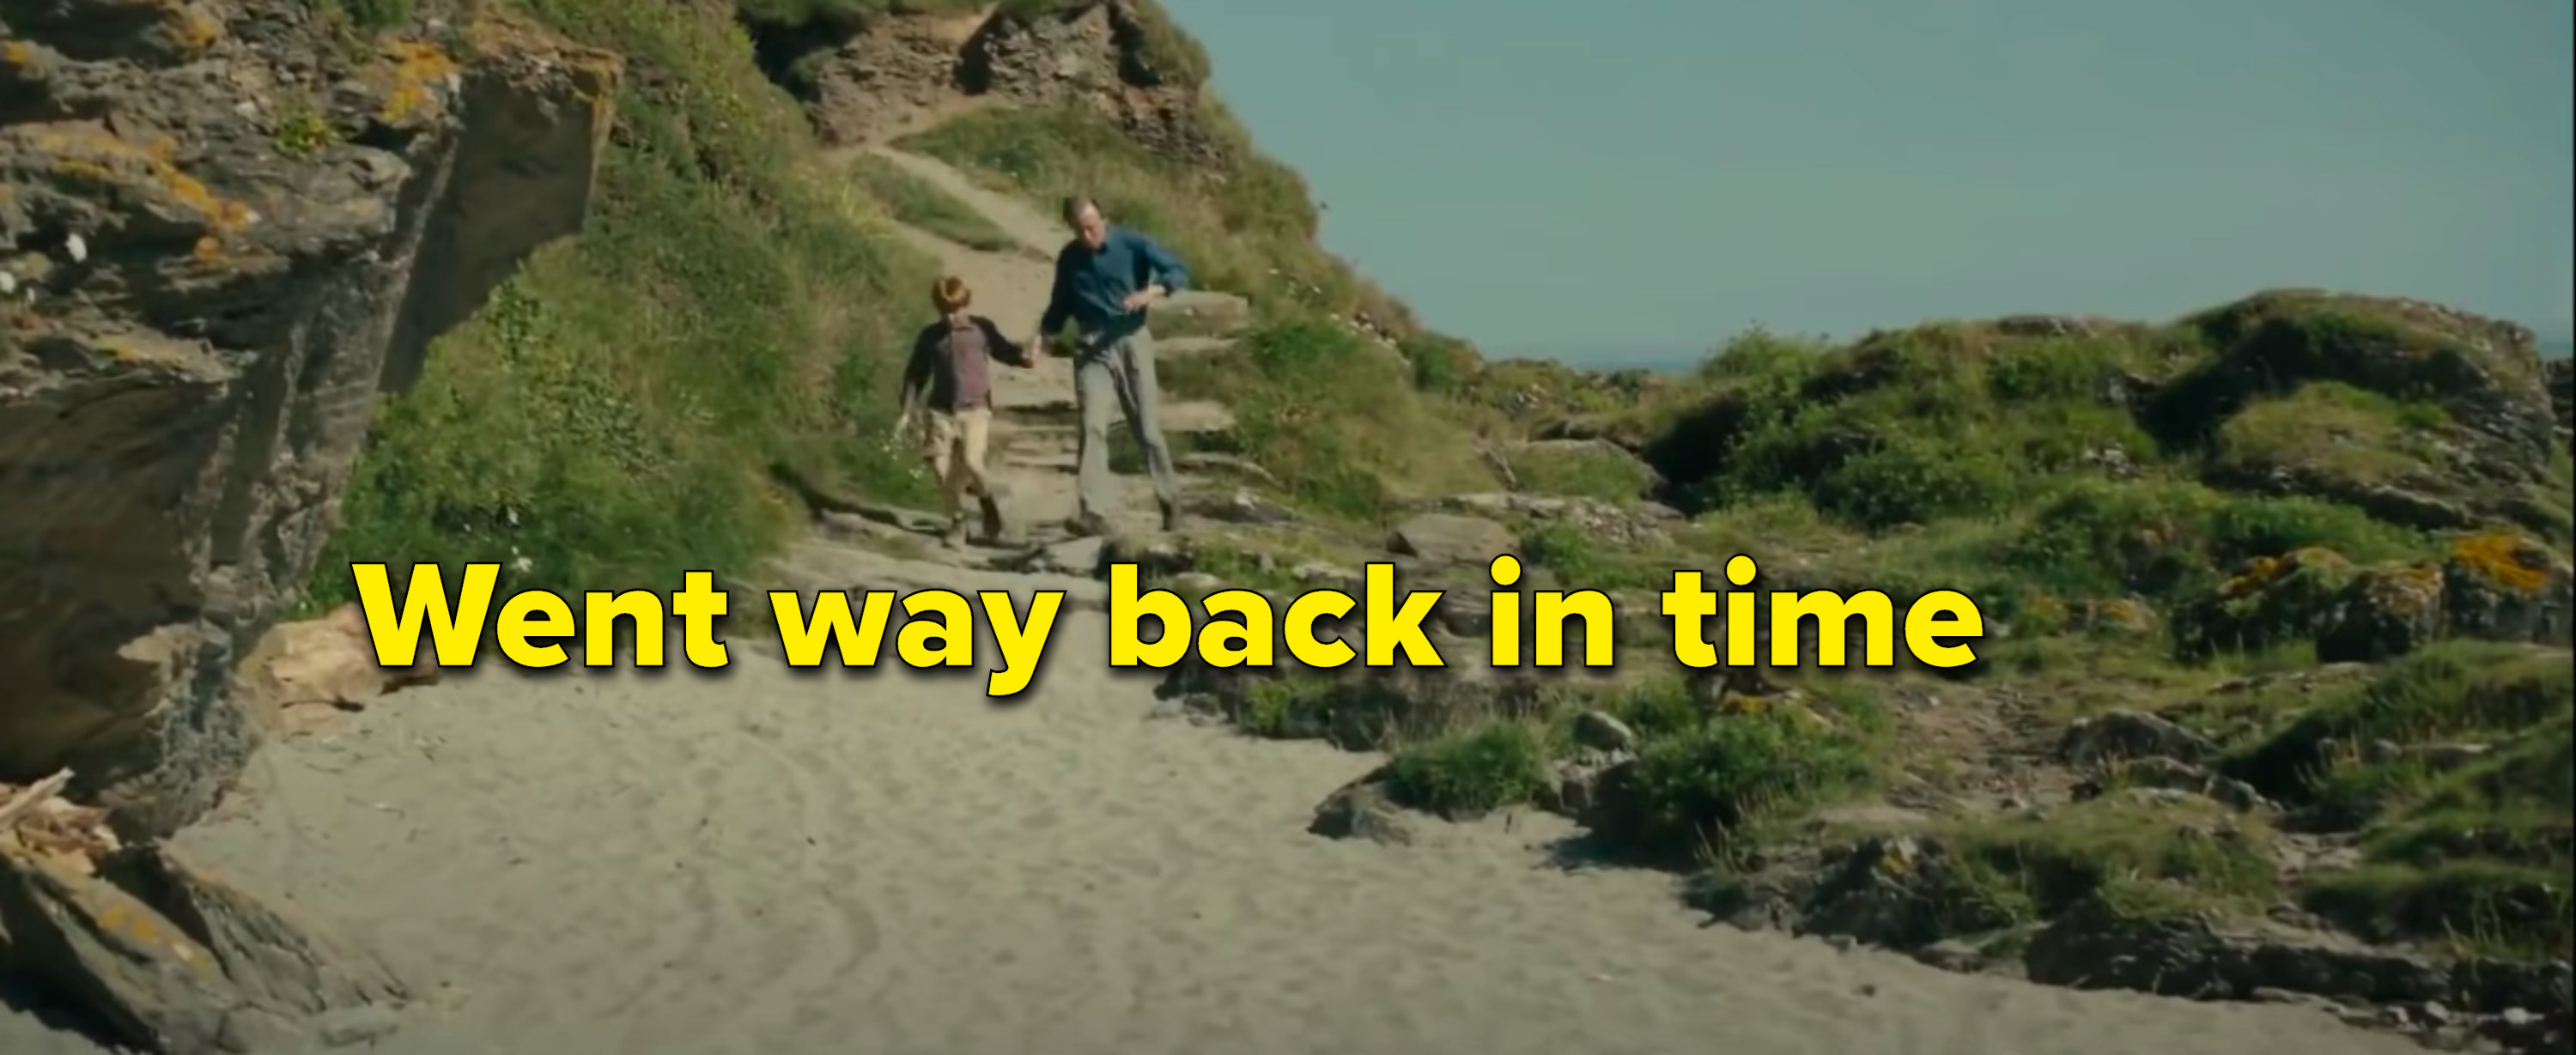 Tim, a child again, runs on the beach with his dad because they went way back in time